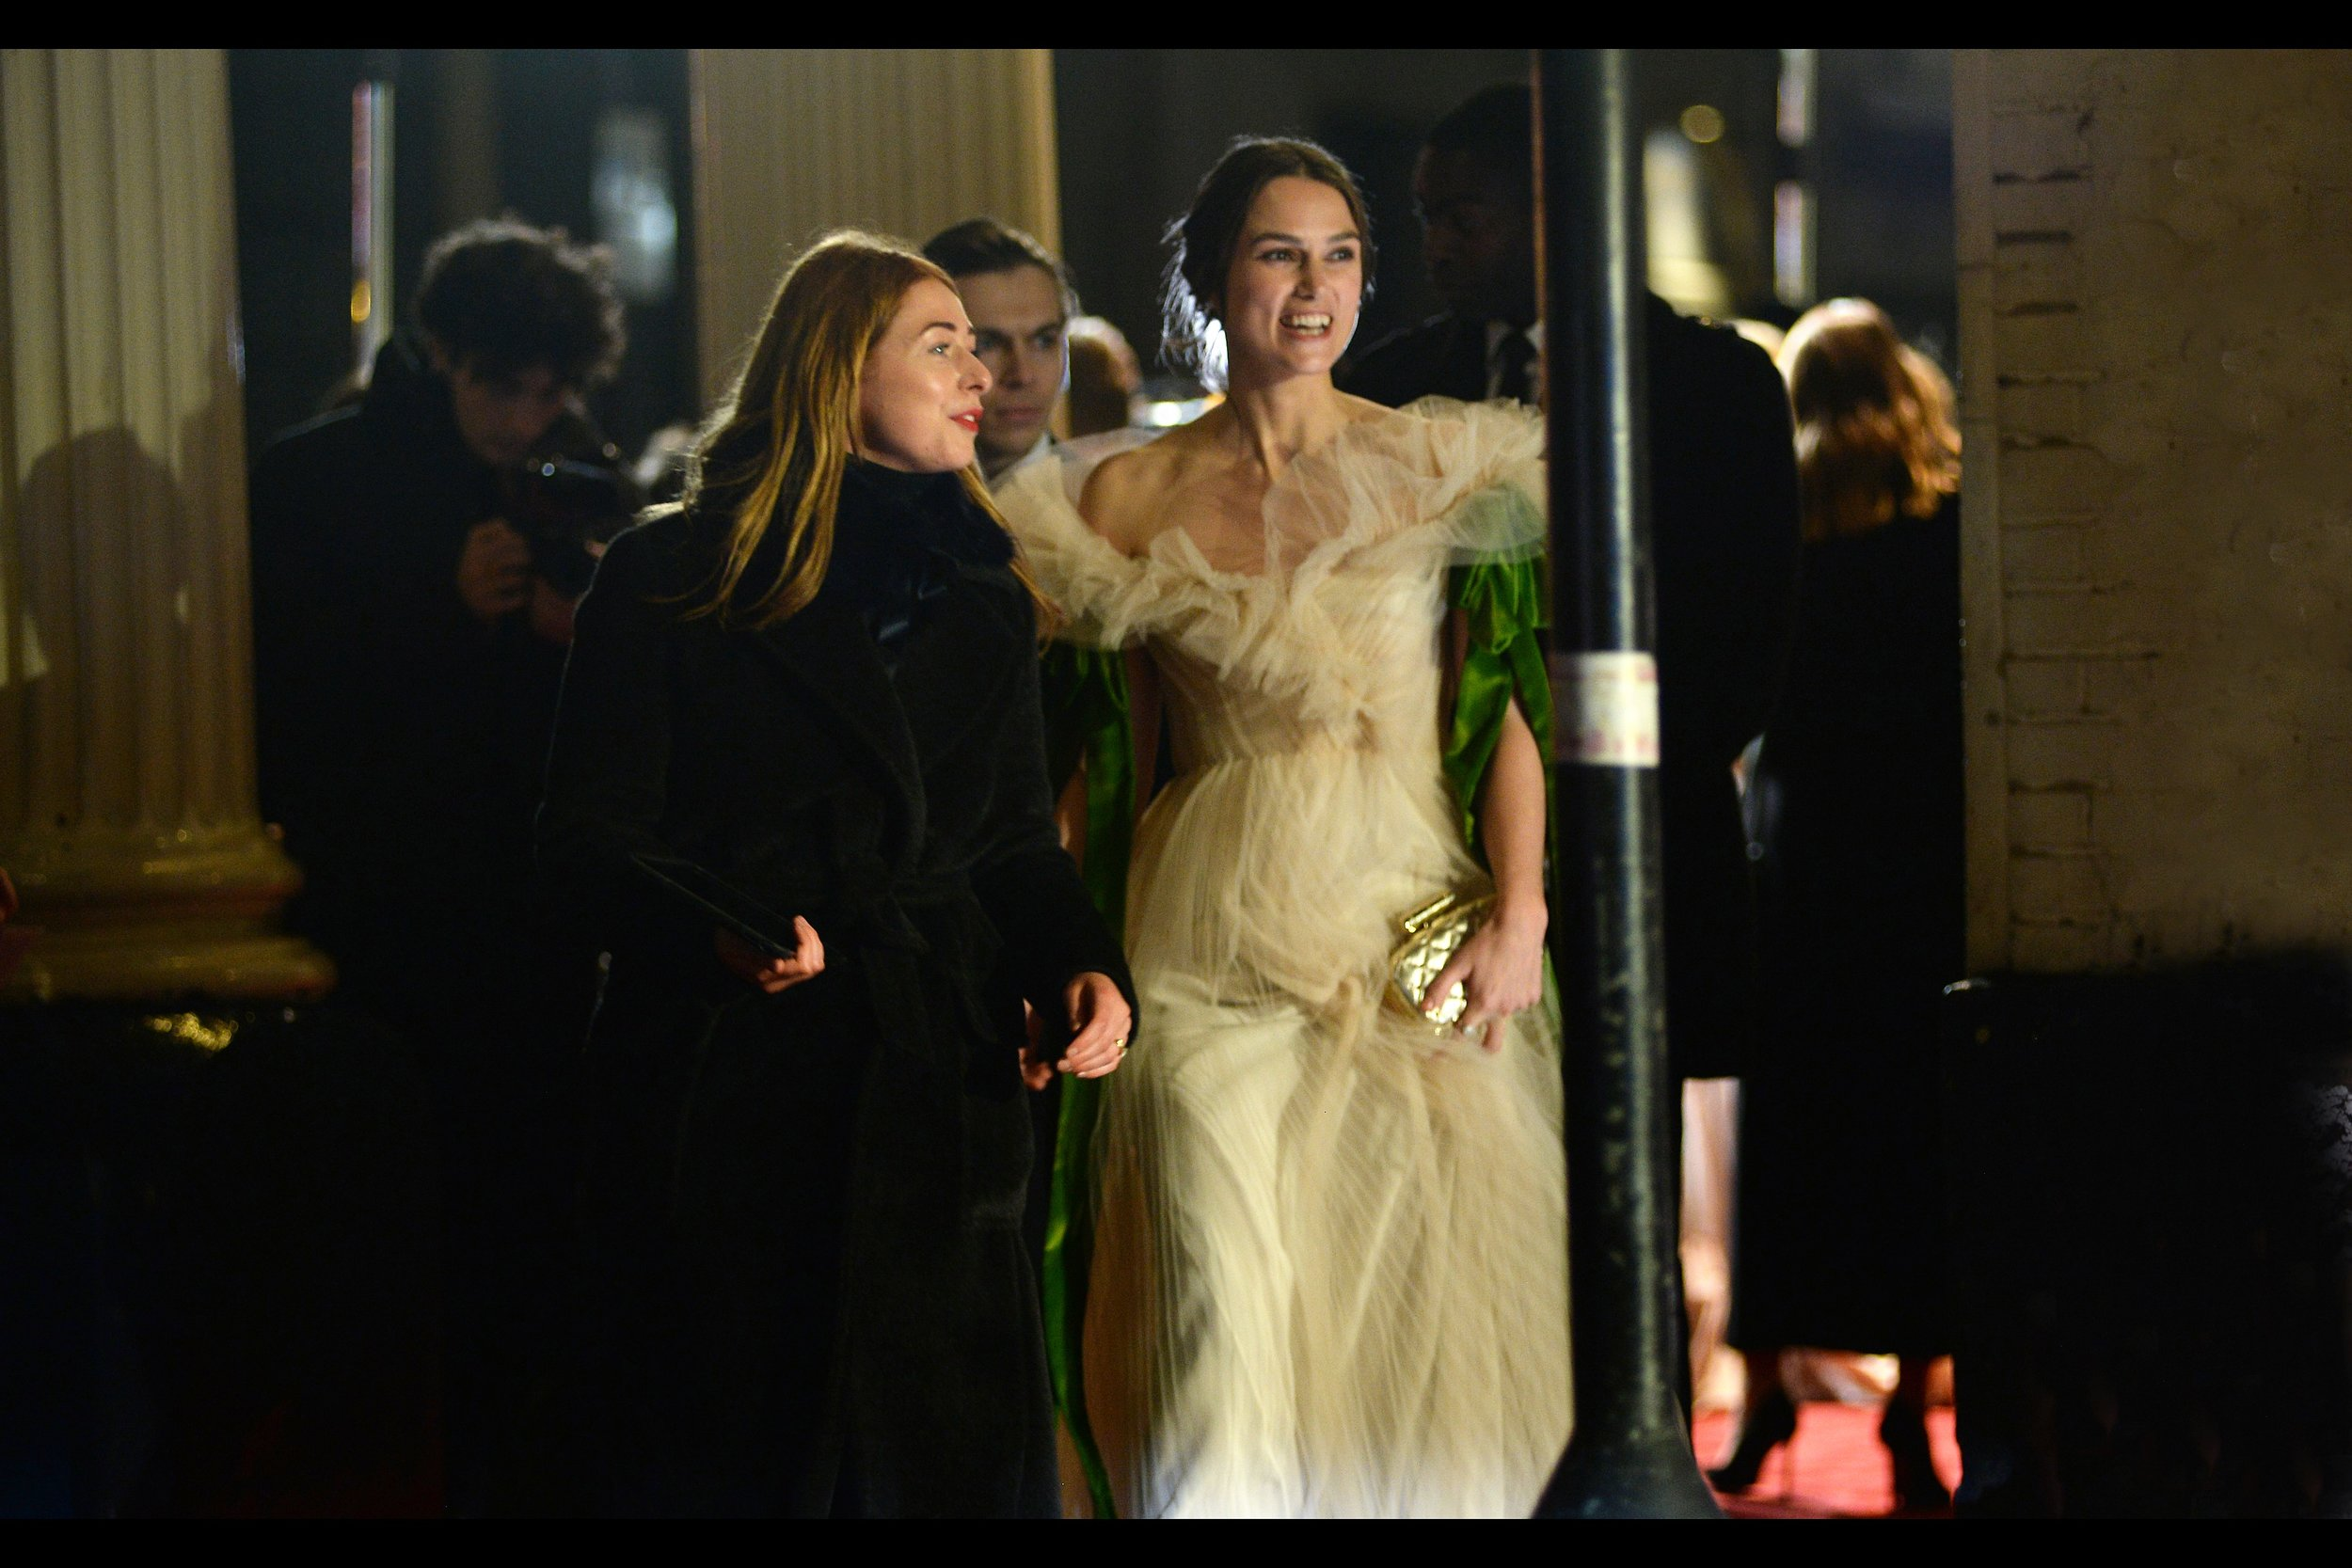 """I'm not entirely certain what actress Keira Knightley's bona fides are where theatre is concerned, but given mine is limited mostly to """"Hey, I'm At This Event And It's Cold"""", I suppose I'm not one to judge."""